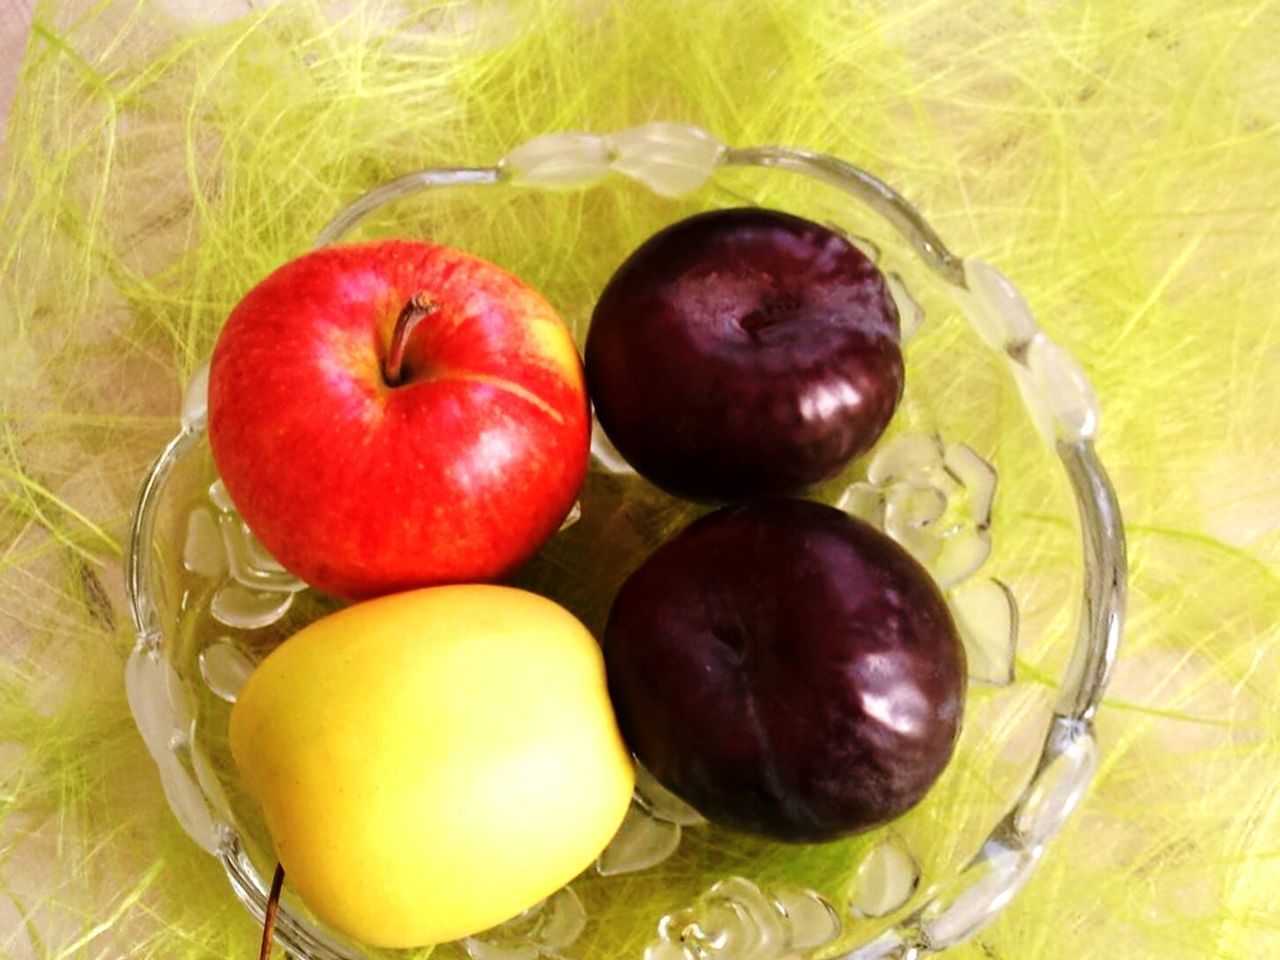 fruit, food, healthy eating, food and drink, freshness, apple - fruit, no people, yellow, grass, close-up, indoors, day